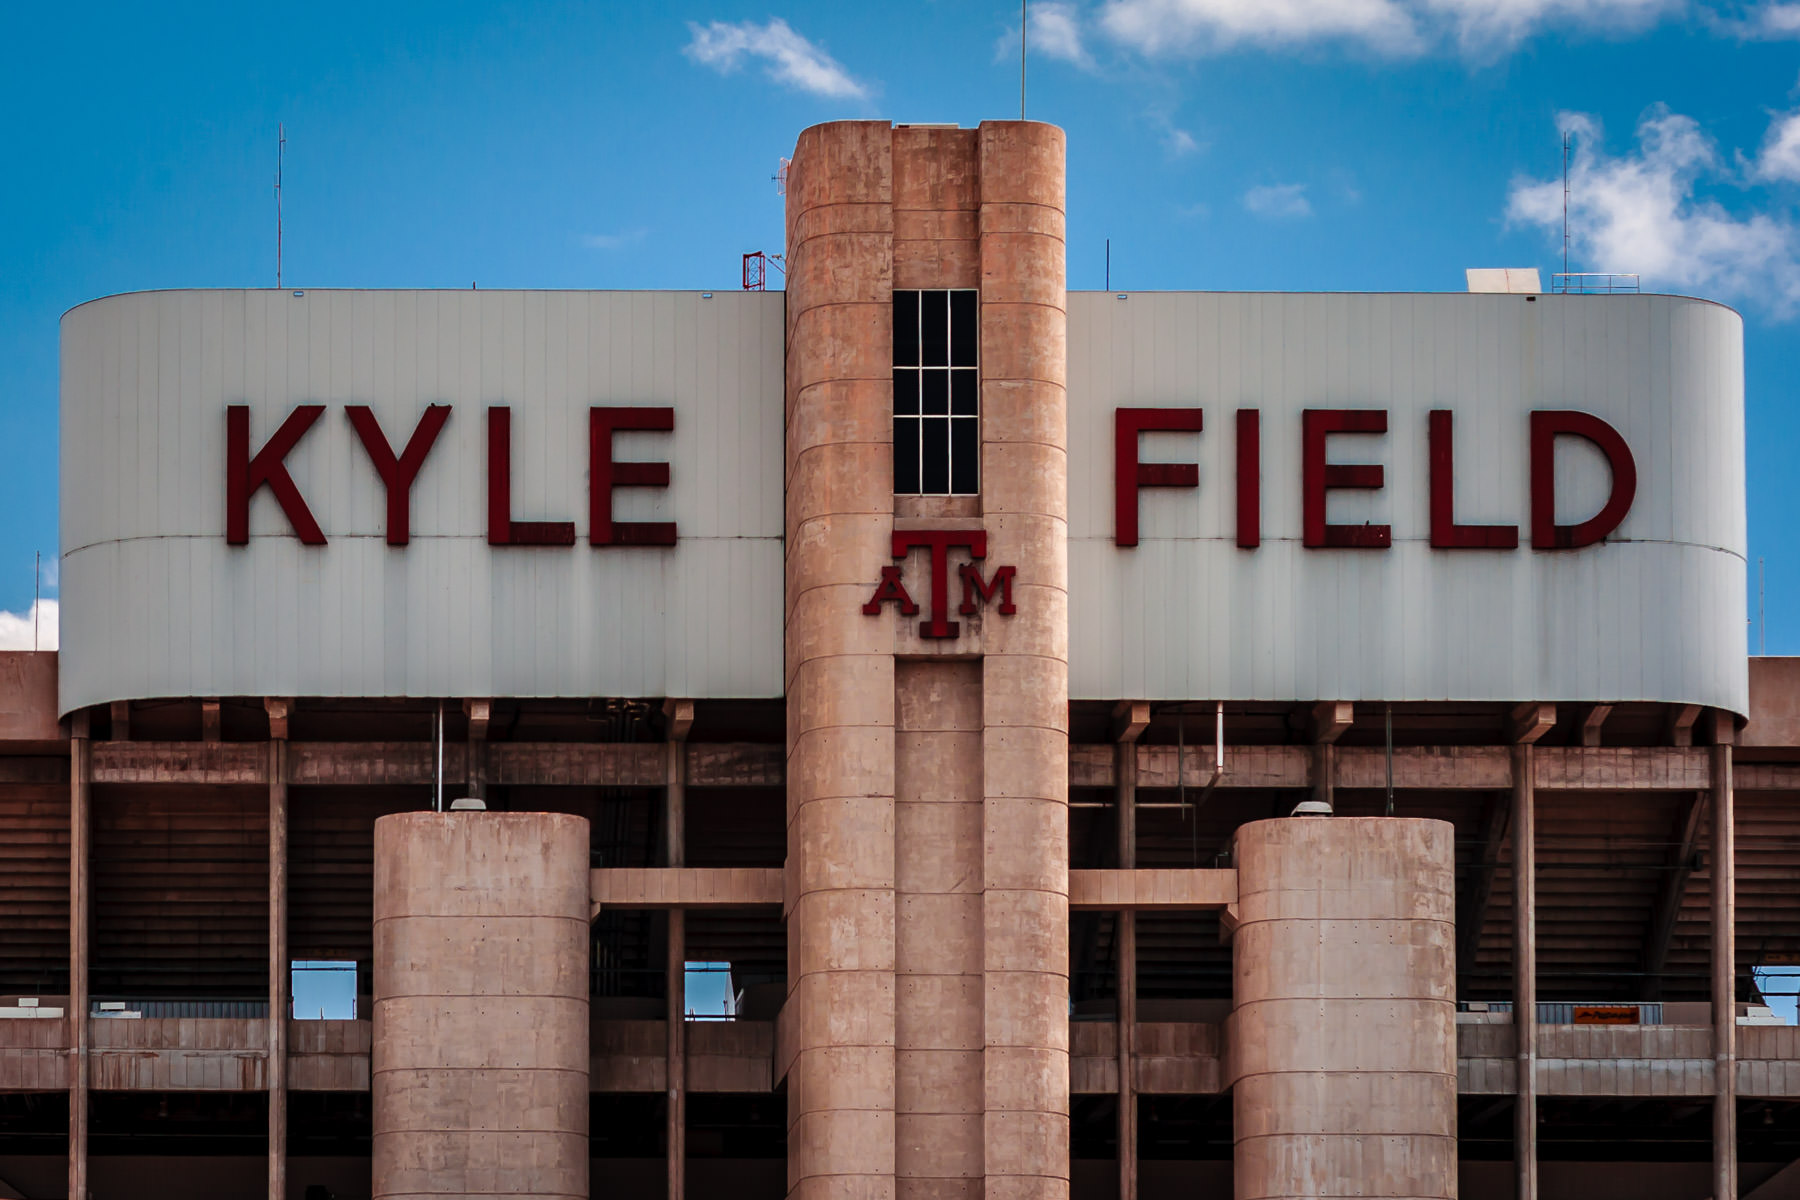 Exterior detail of Kyle Field—Texas A&M University's football stadium—before its 2013-2015 renovation.